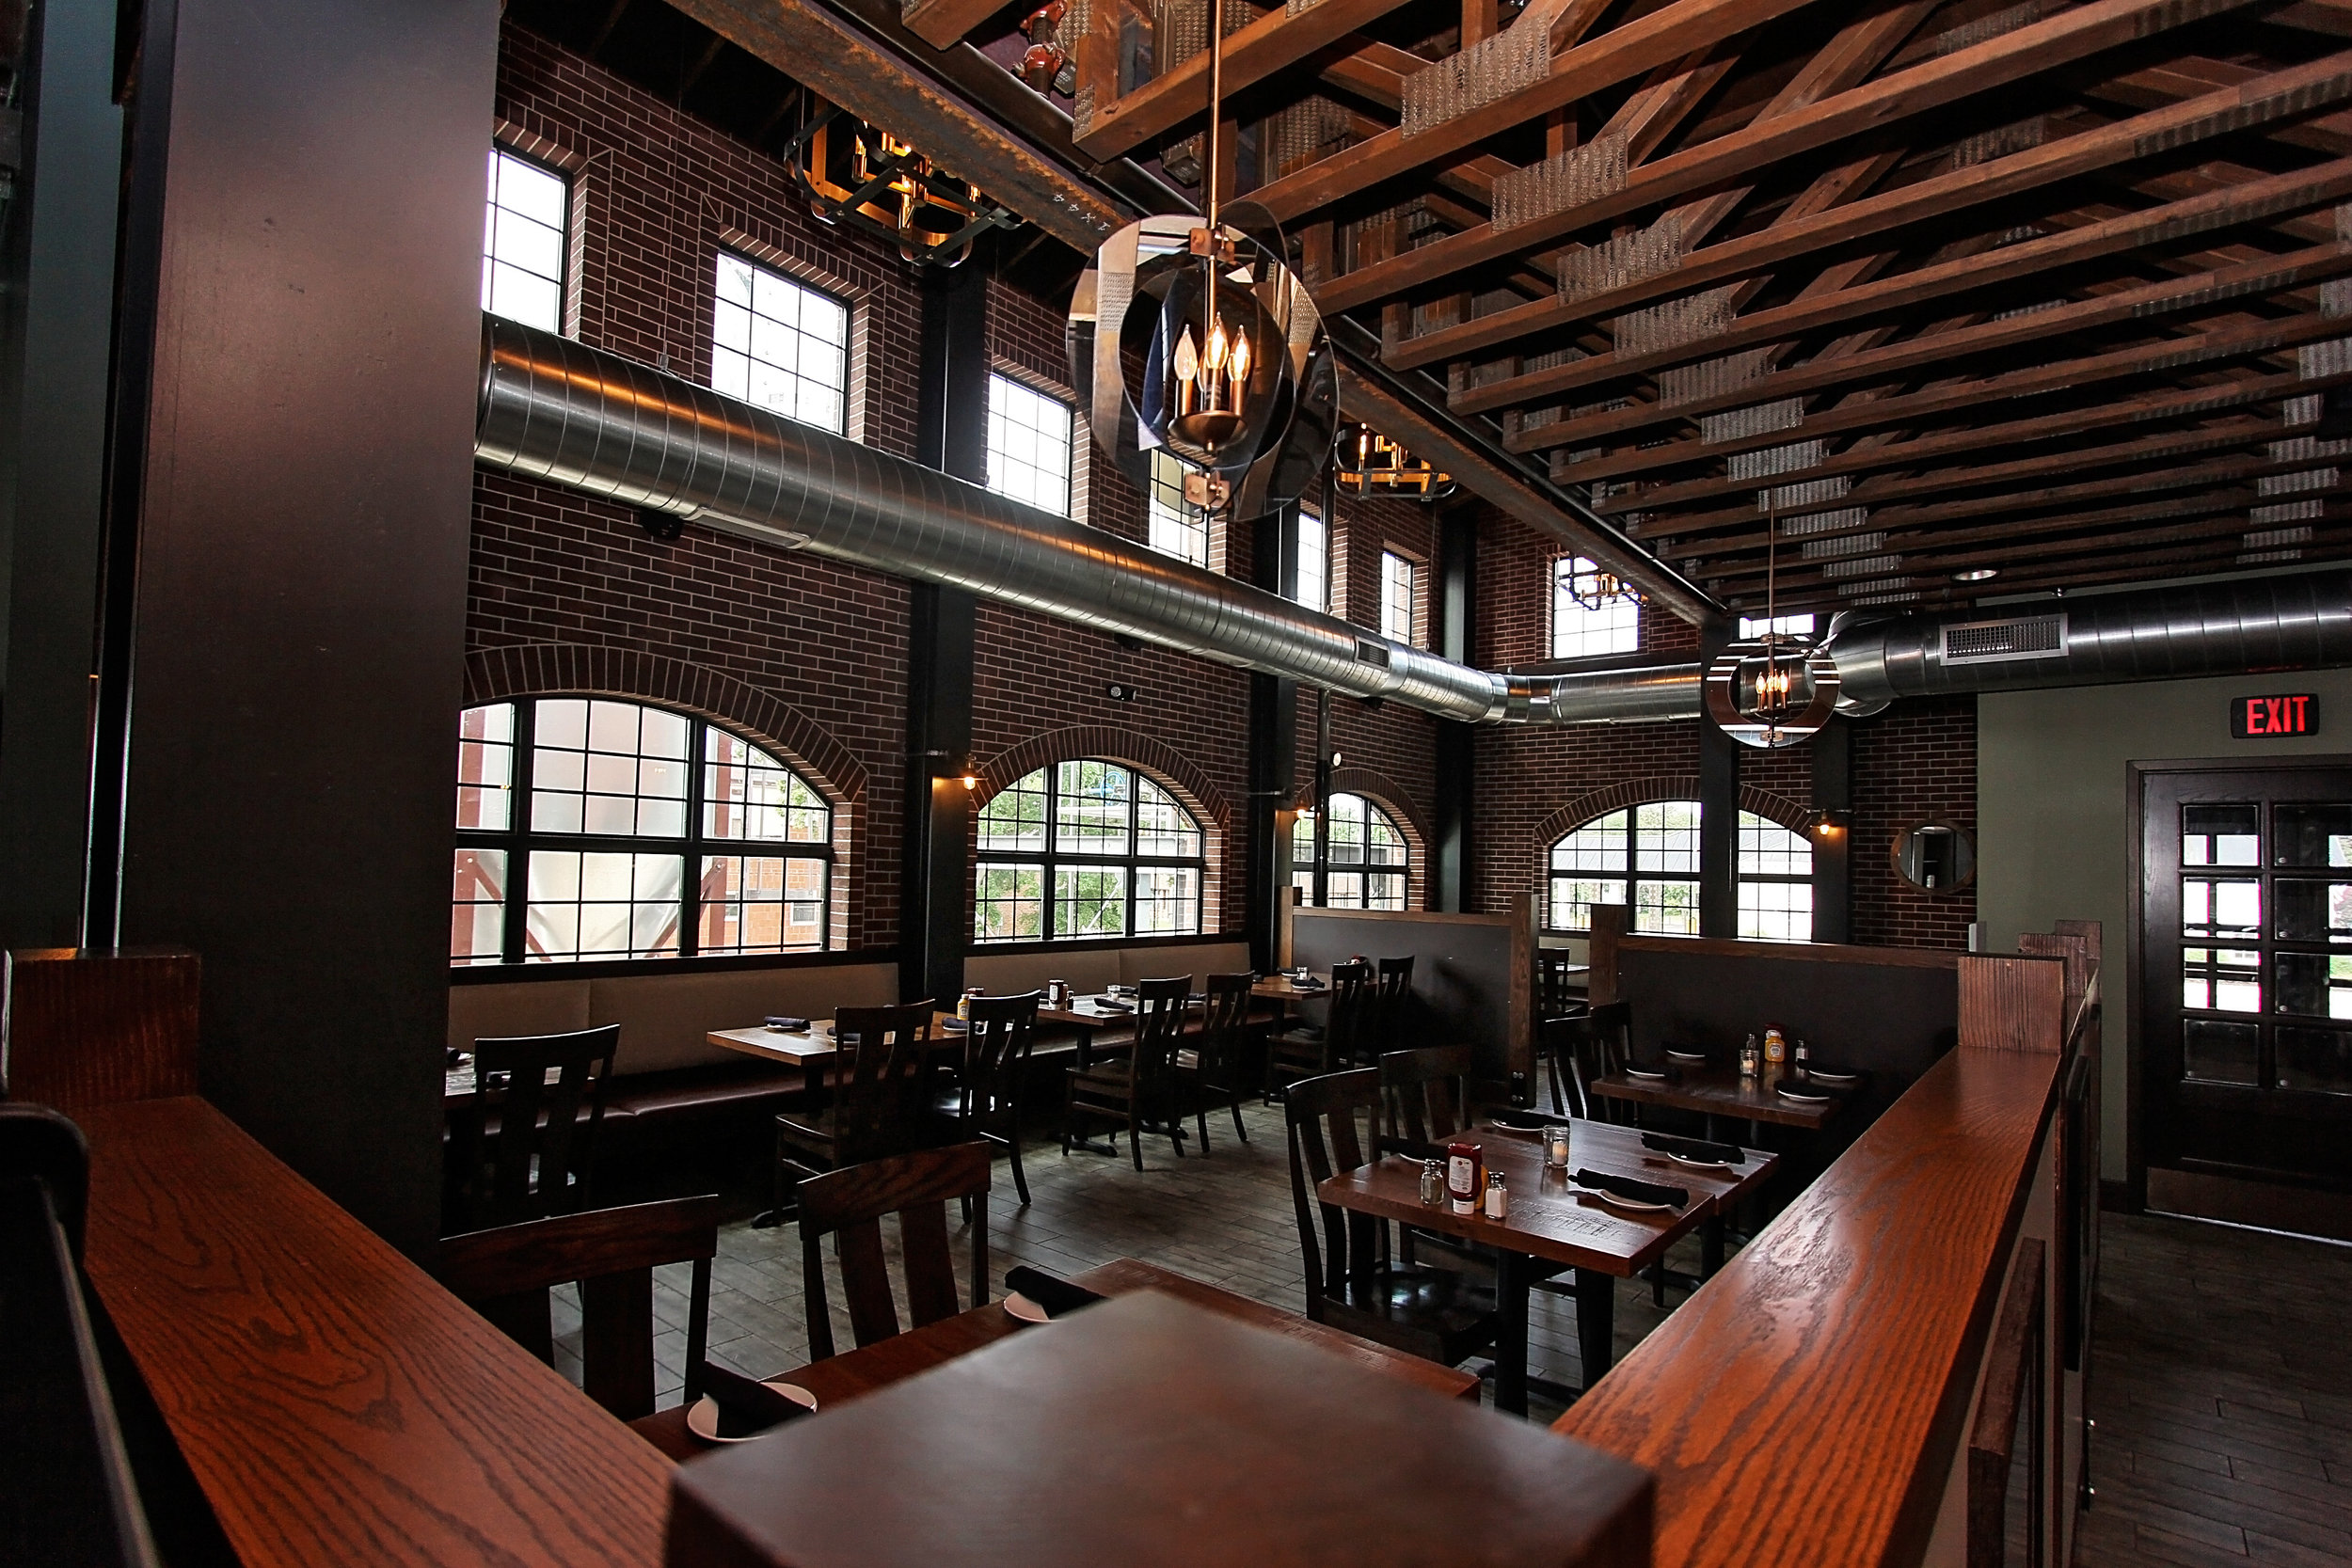 Inside seating area at Vintage Brewery Bar & Restaurant